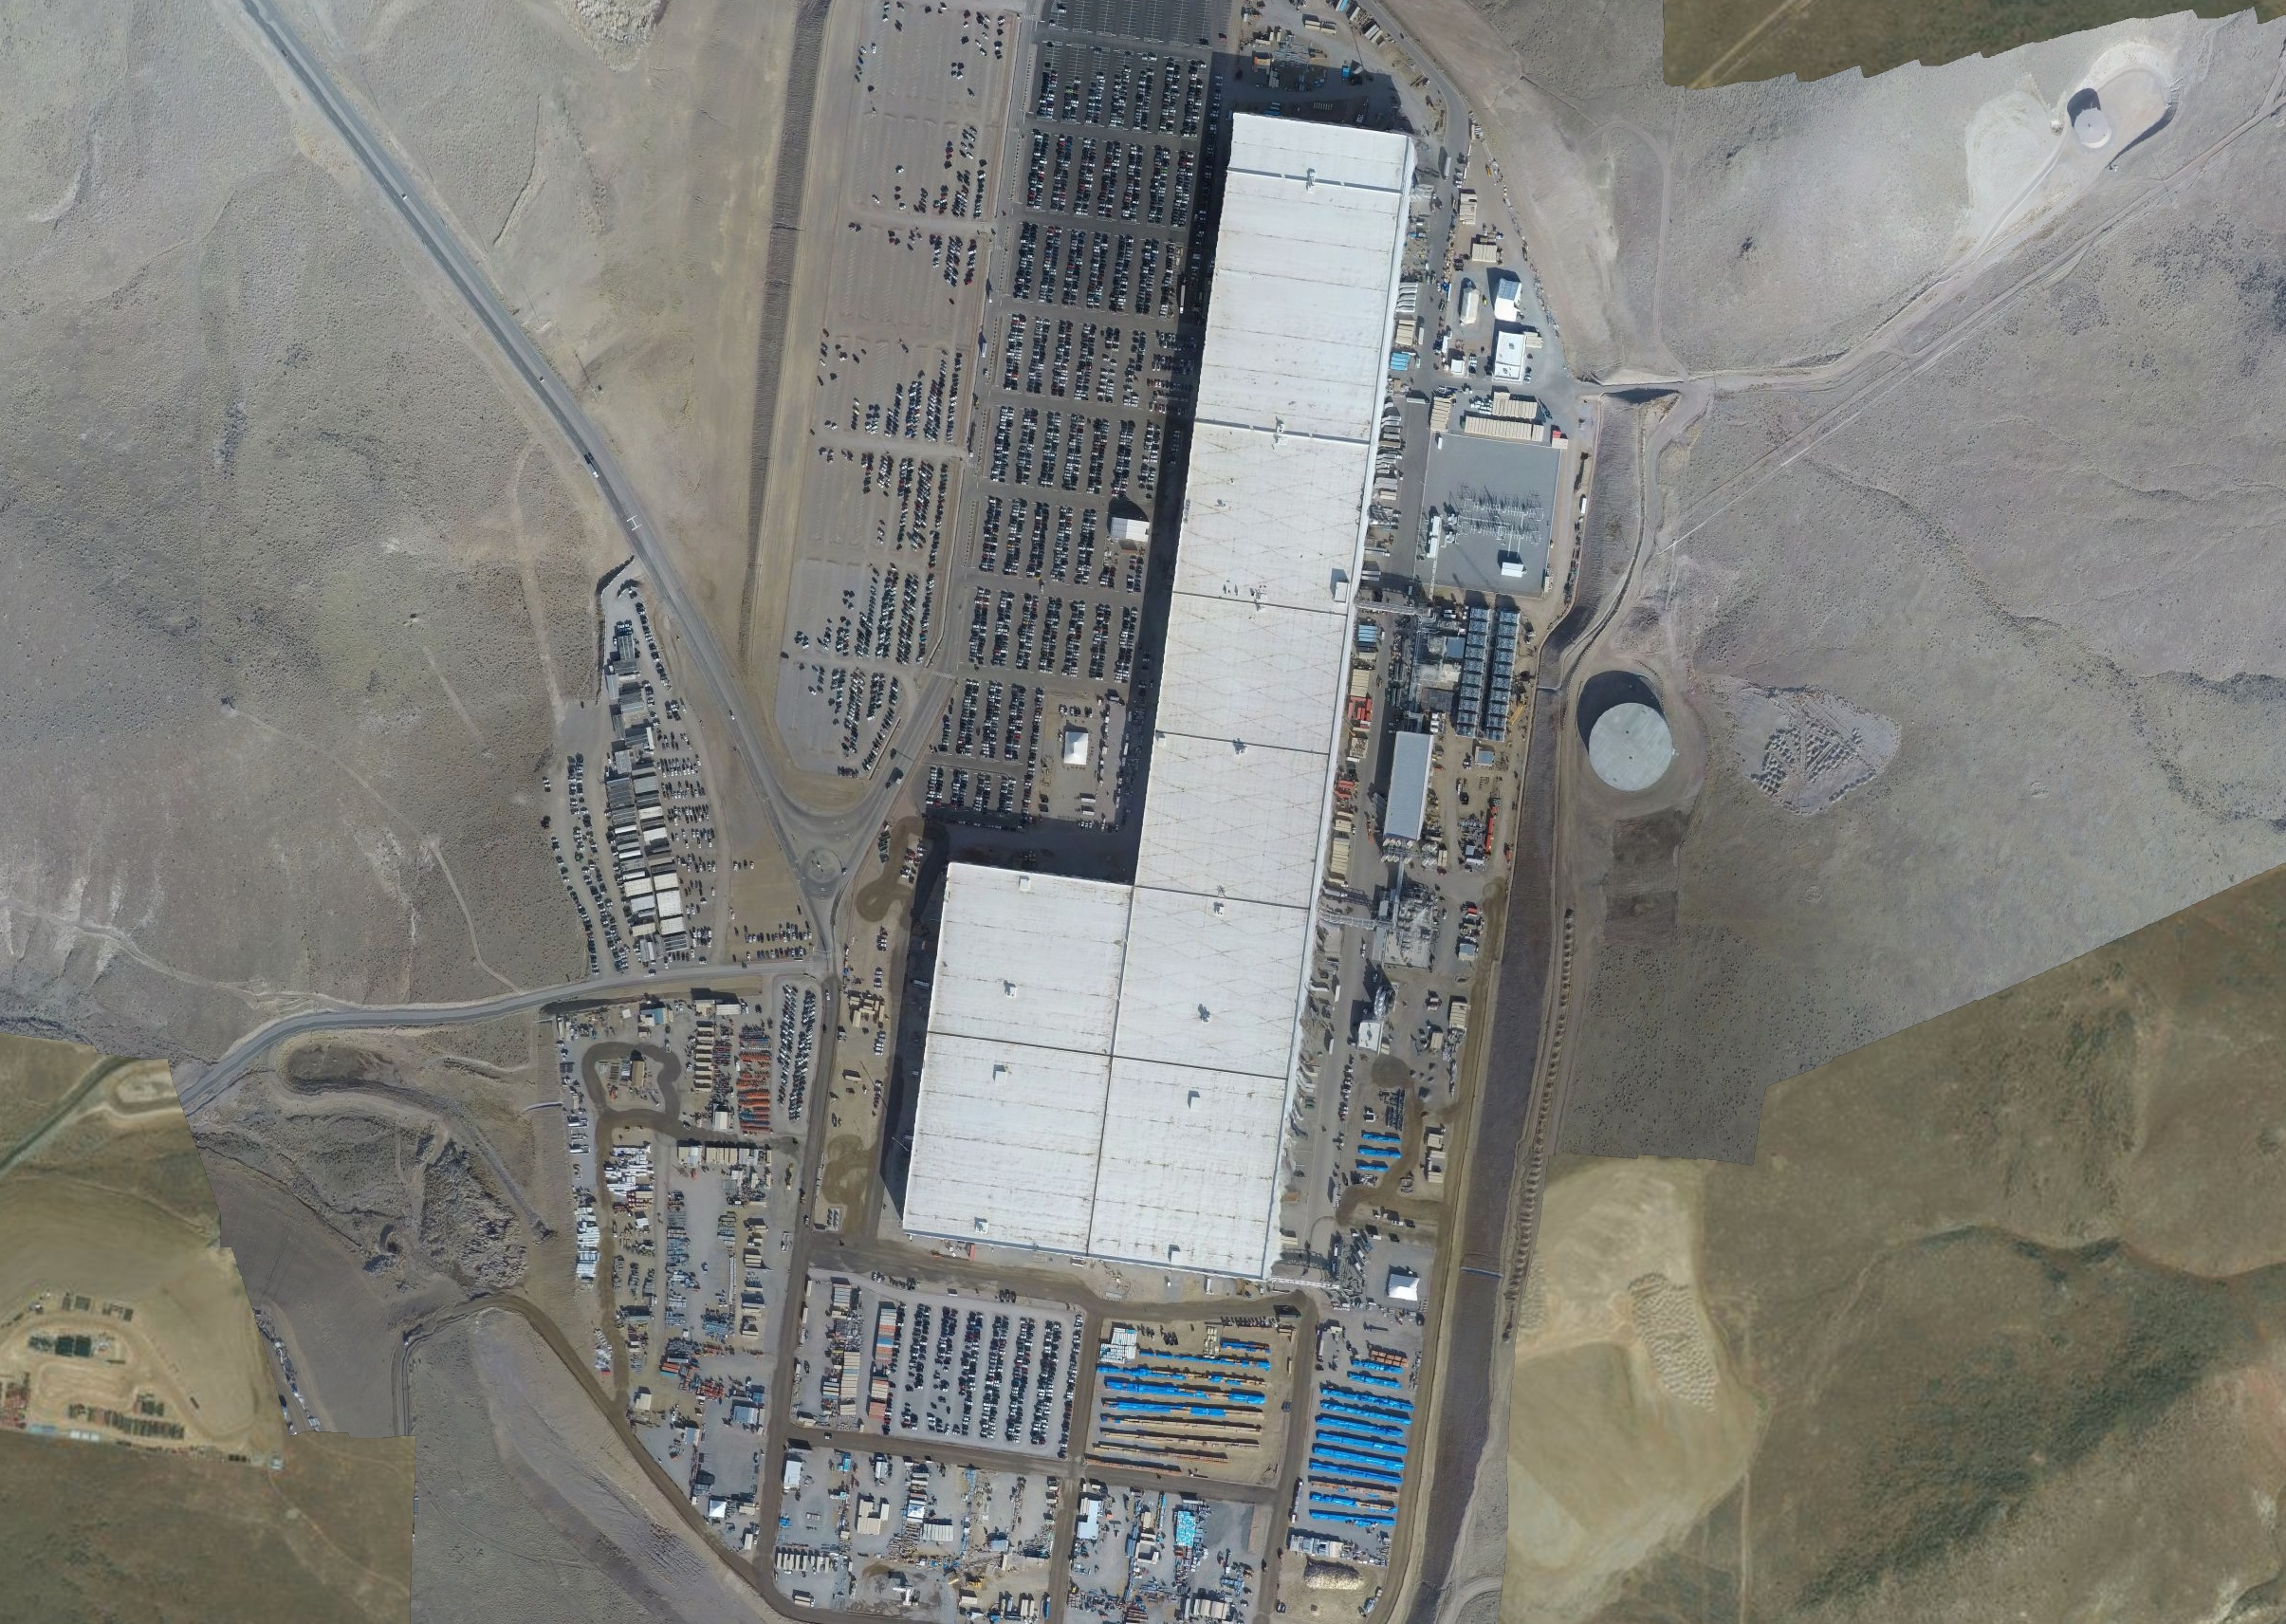 tesla-gigafactory-drone-photo-jan-2018